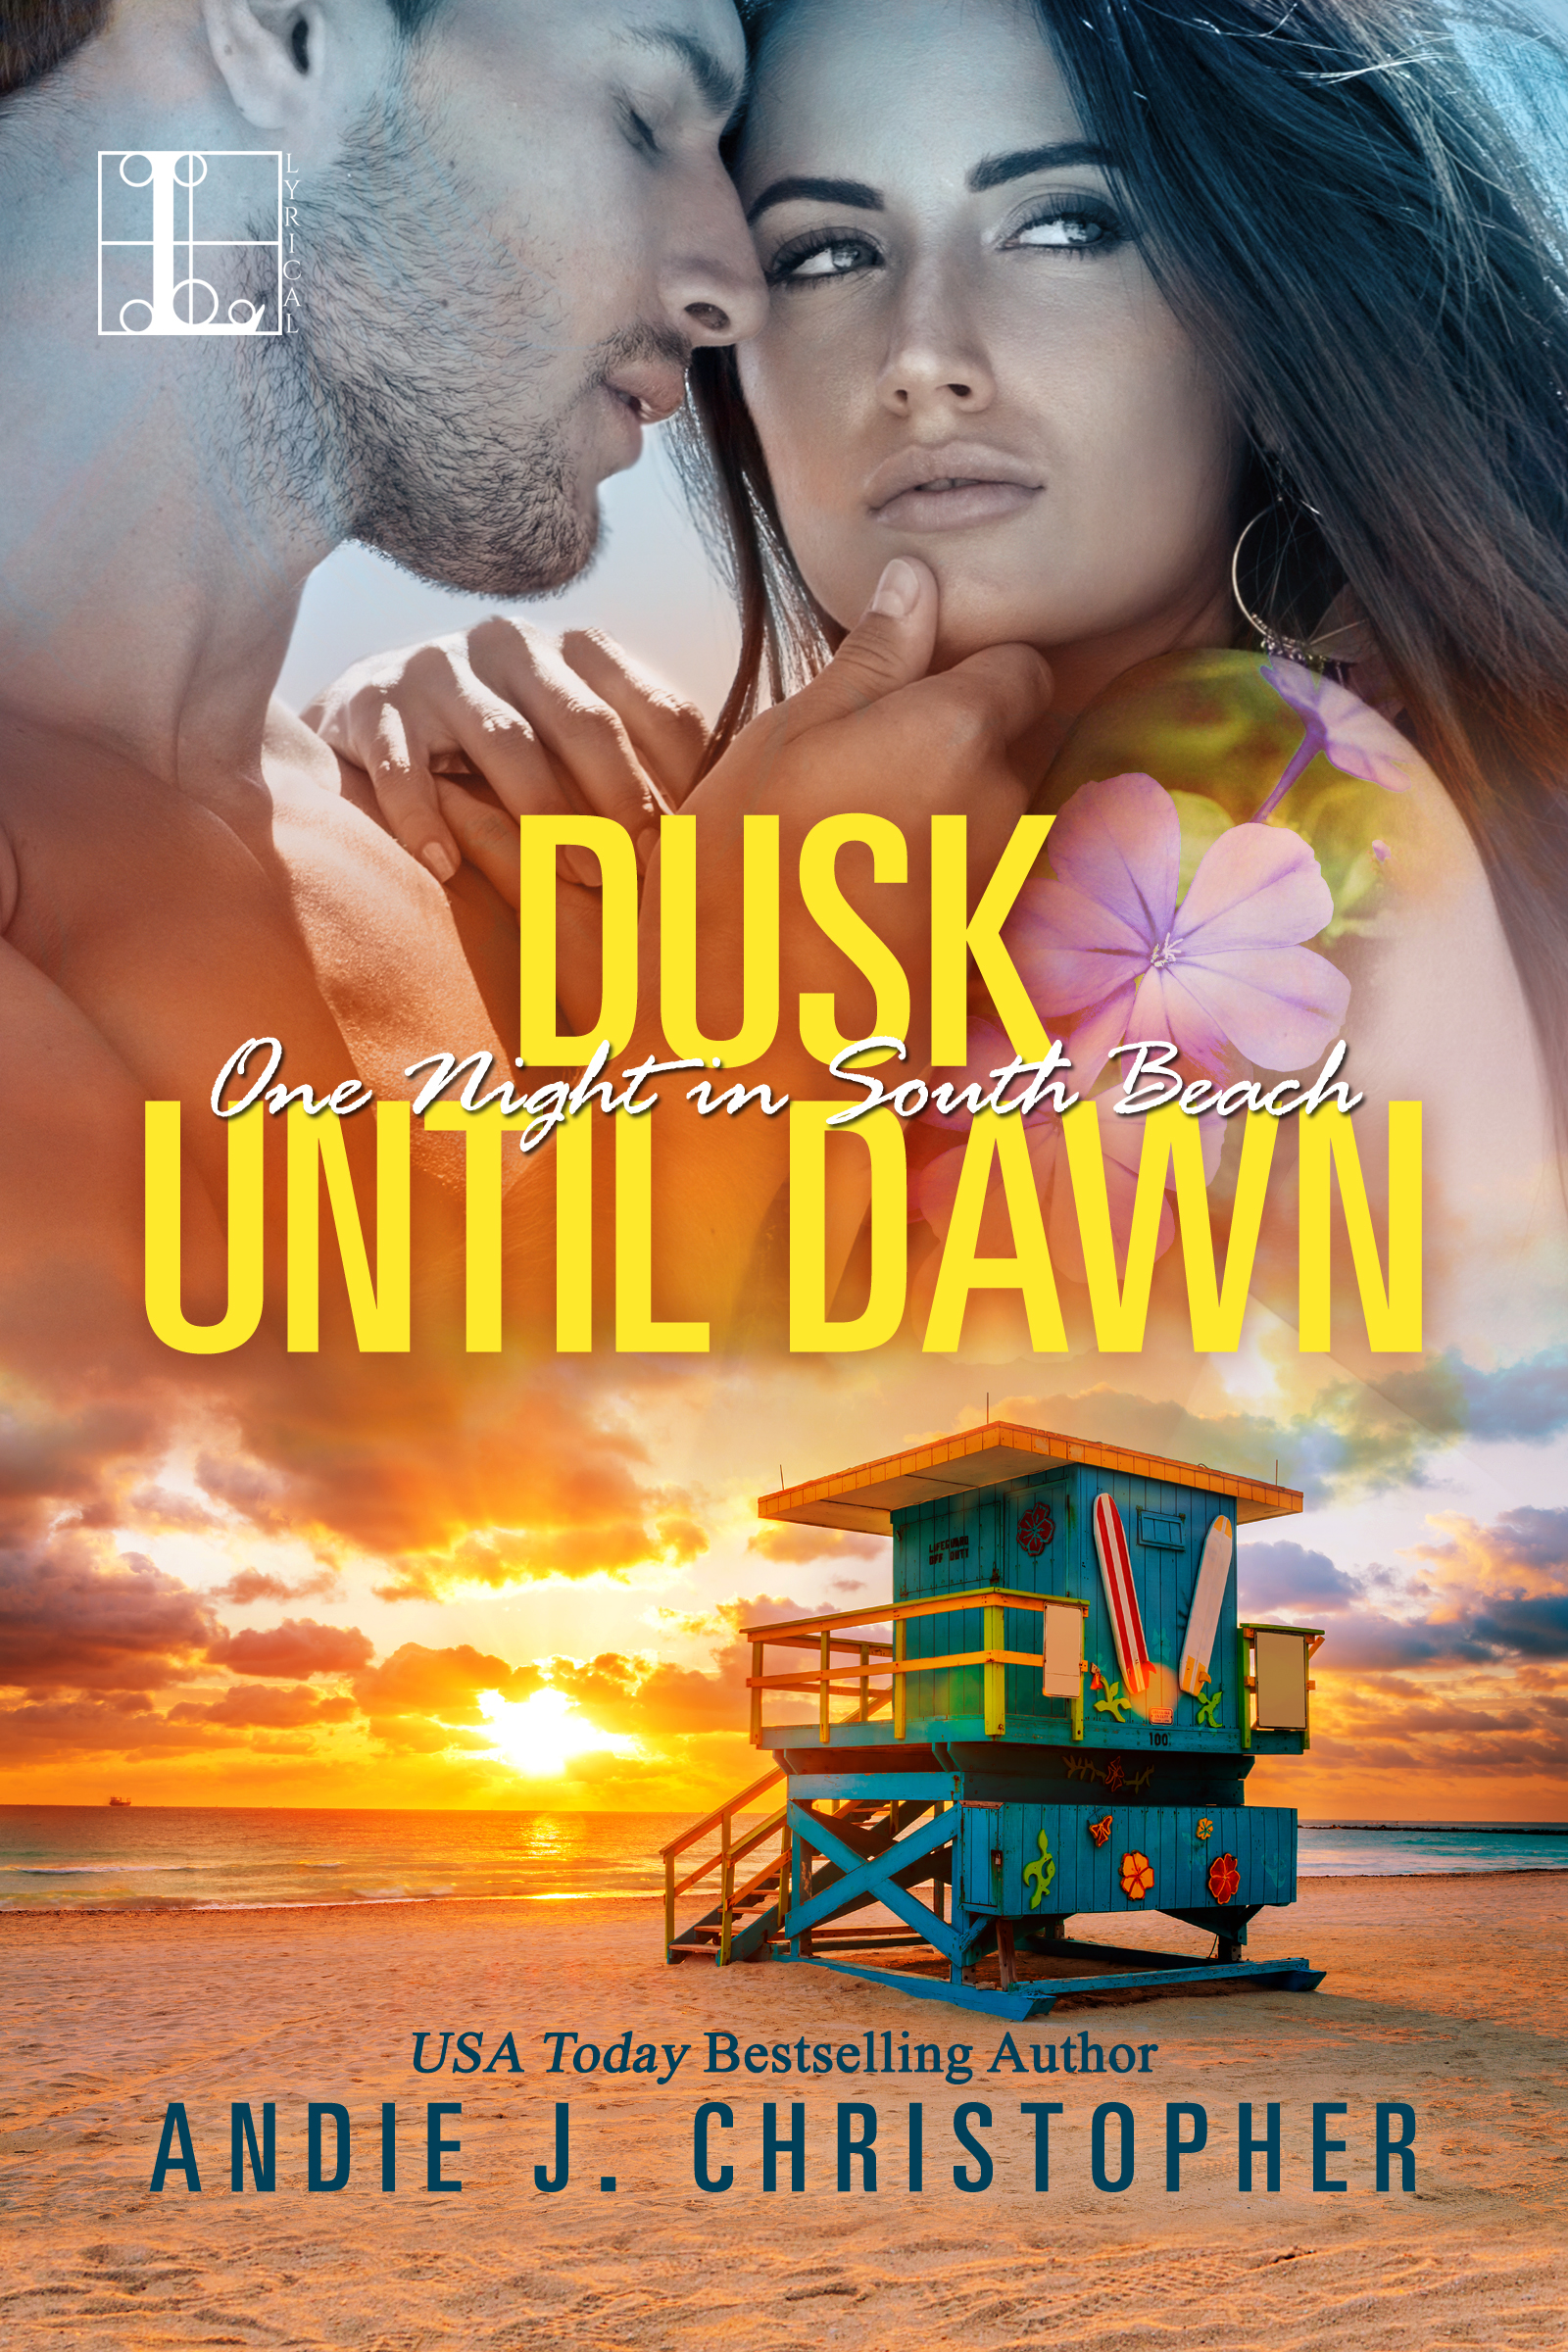 Hot, sexy new romance..a don't miss read